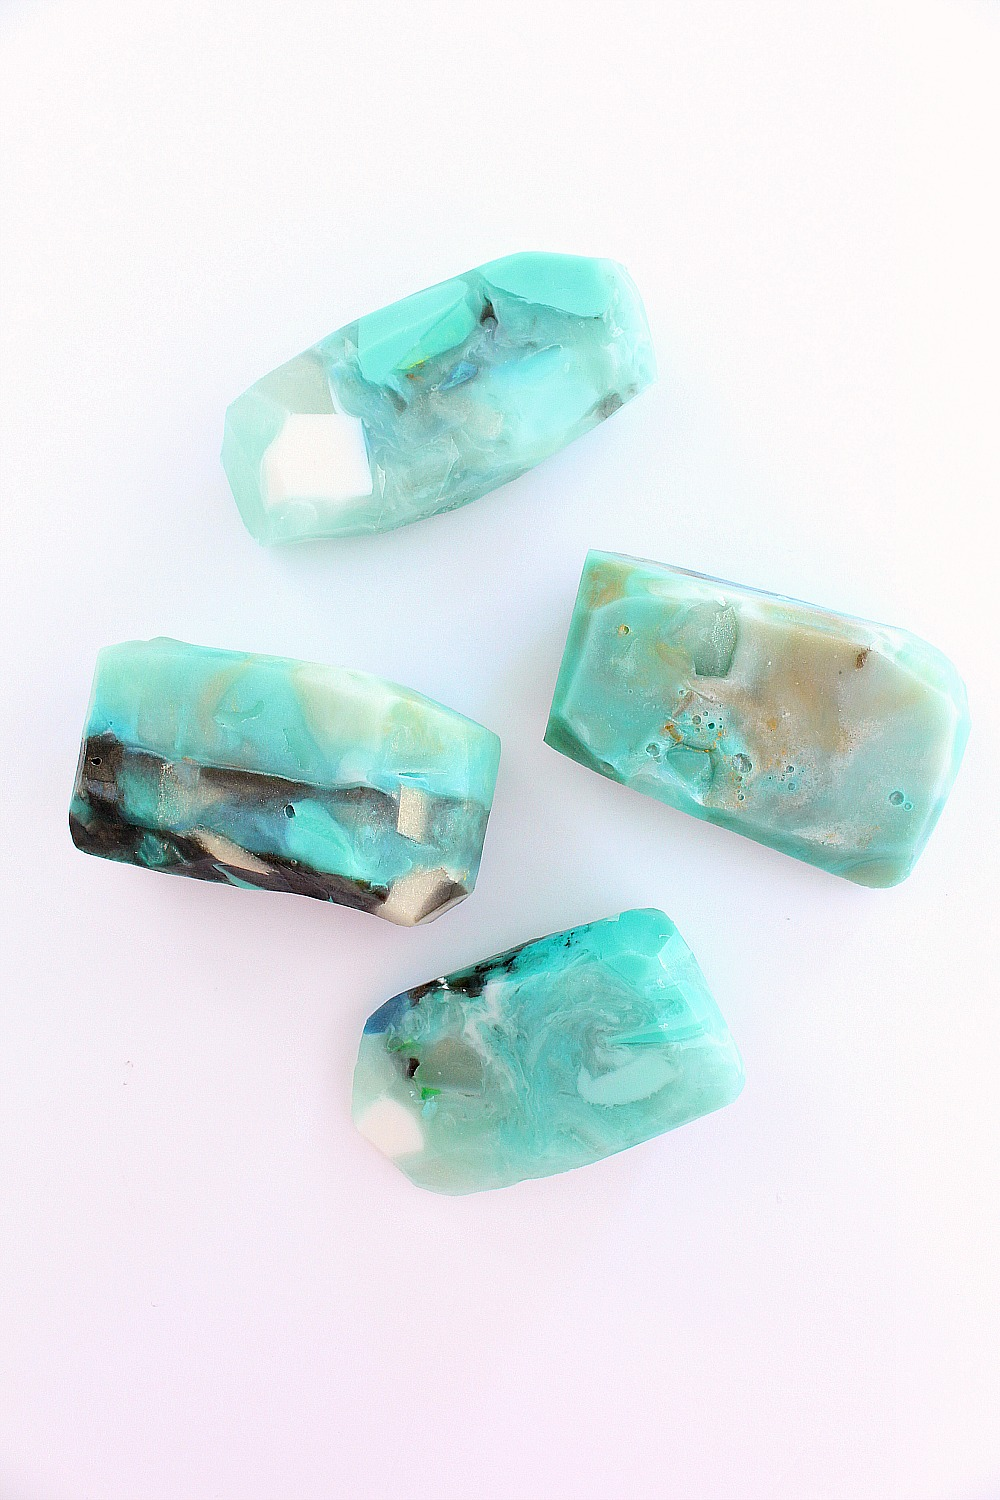 DIY Gemstone Soap | 15 Beautiful Handmade Mother's Day Gift Ideas